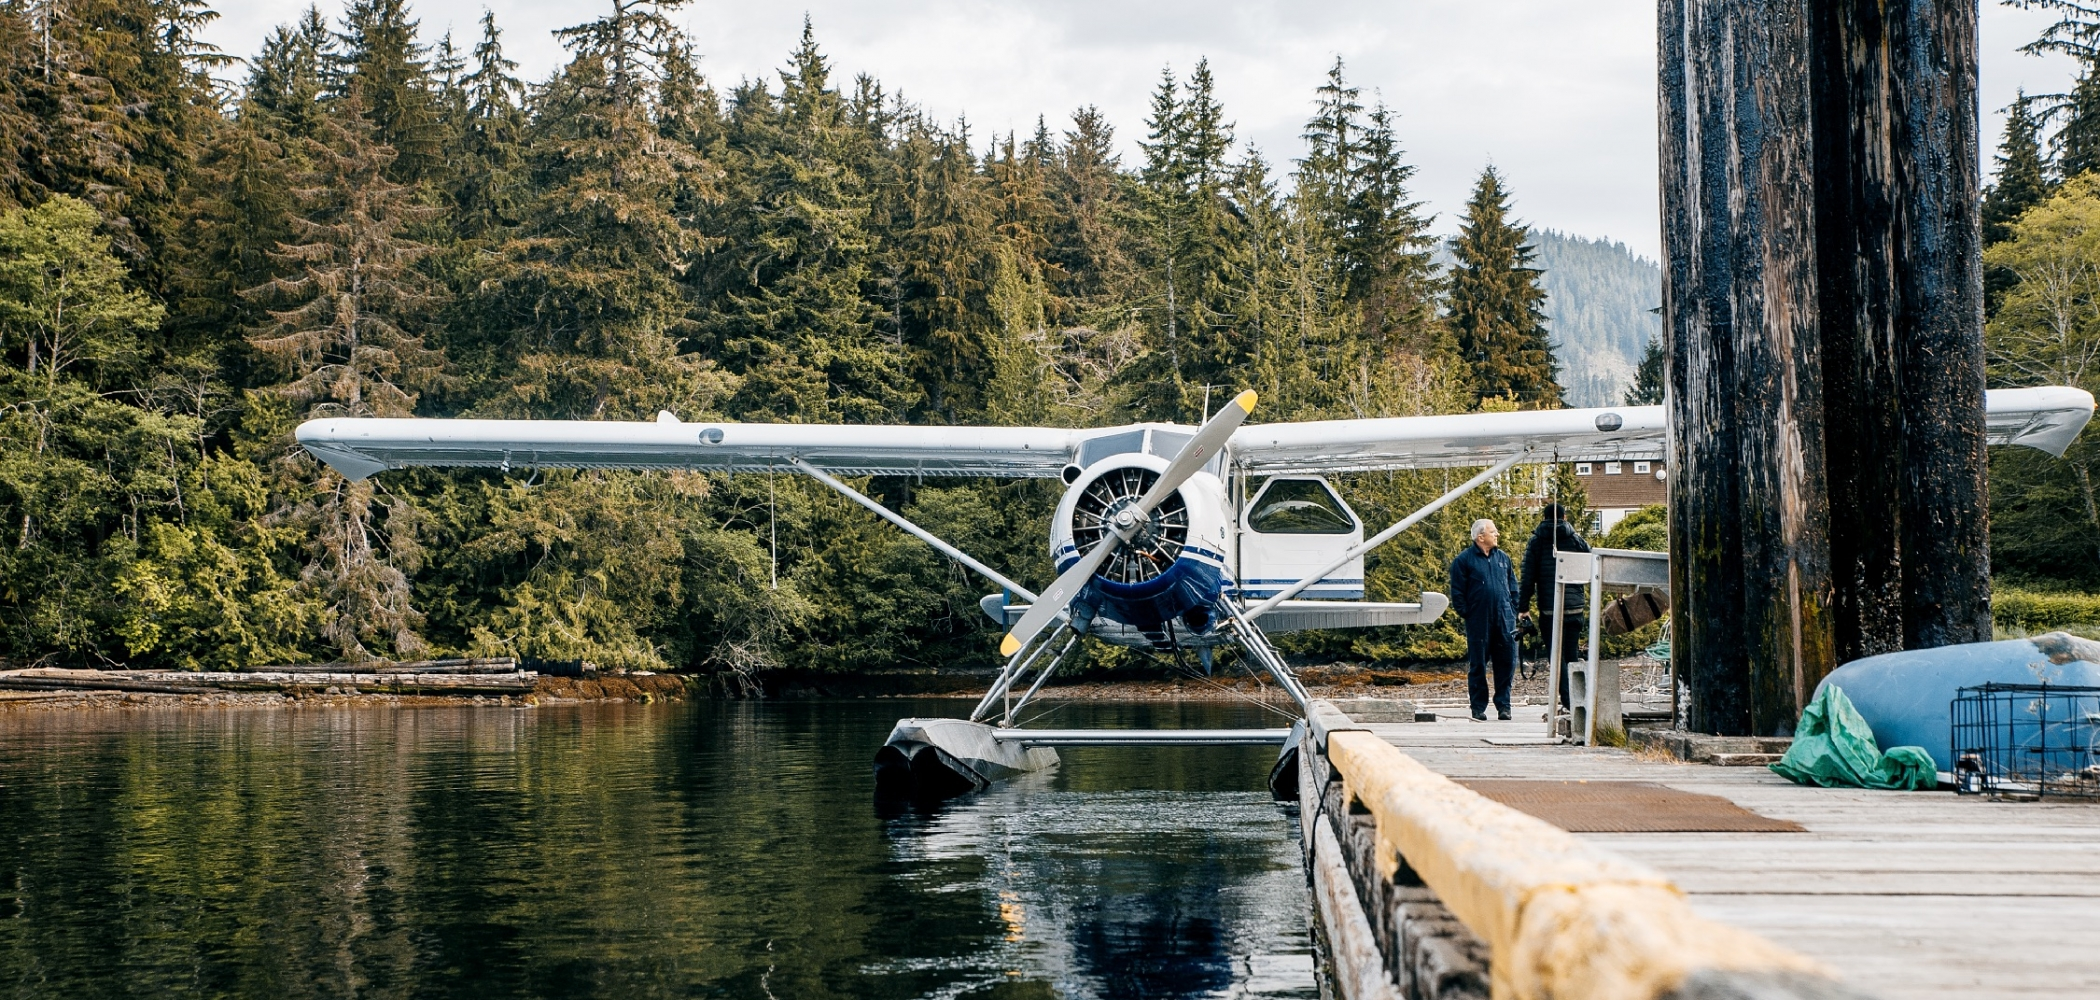 A seaplane is docked in a densely forested area.